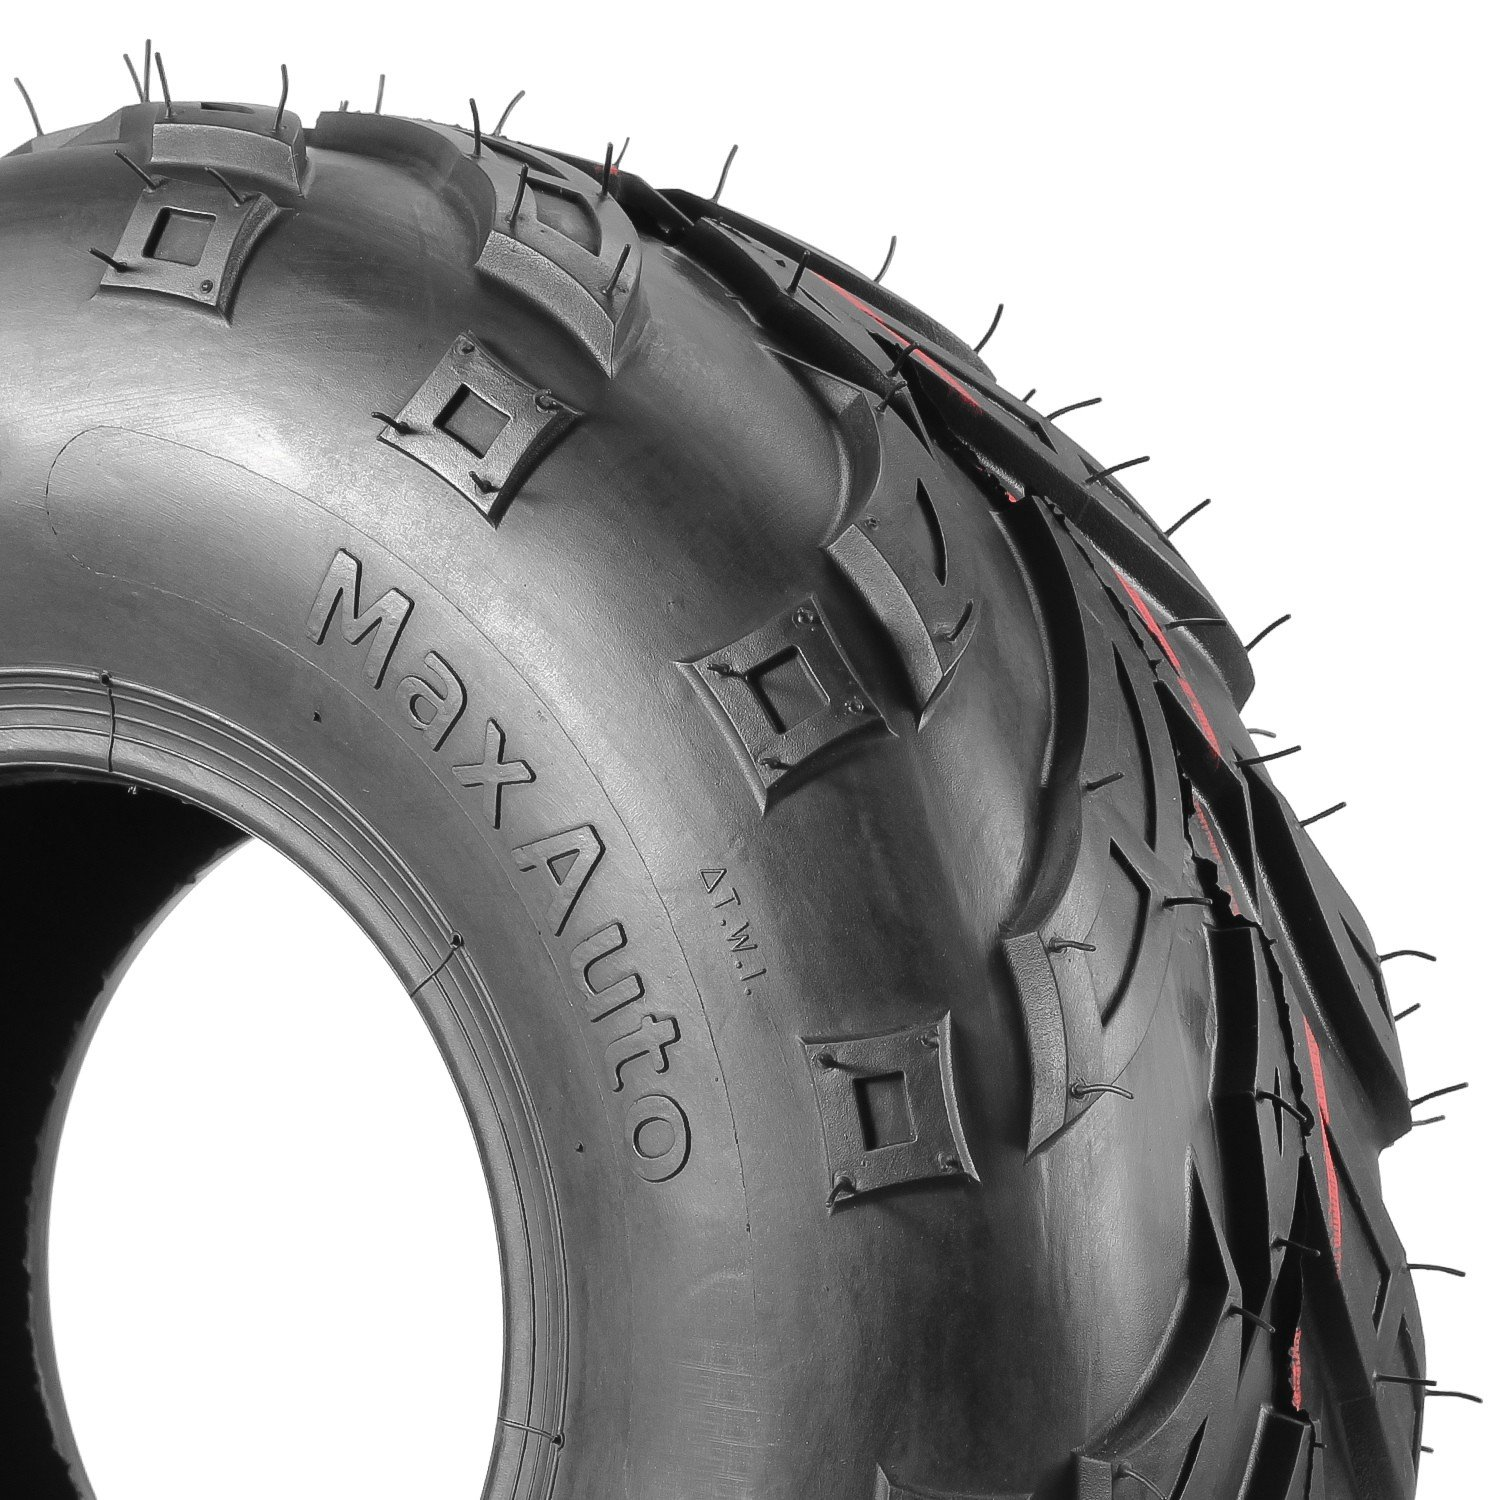 Pack of 4 Sport ATV Tires 145/70-6, 145x70-6 4Ply Go-Kart Lawn mini bike Tires by MaxAuto (Image #4)